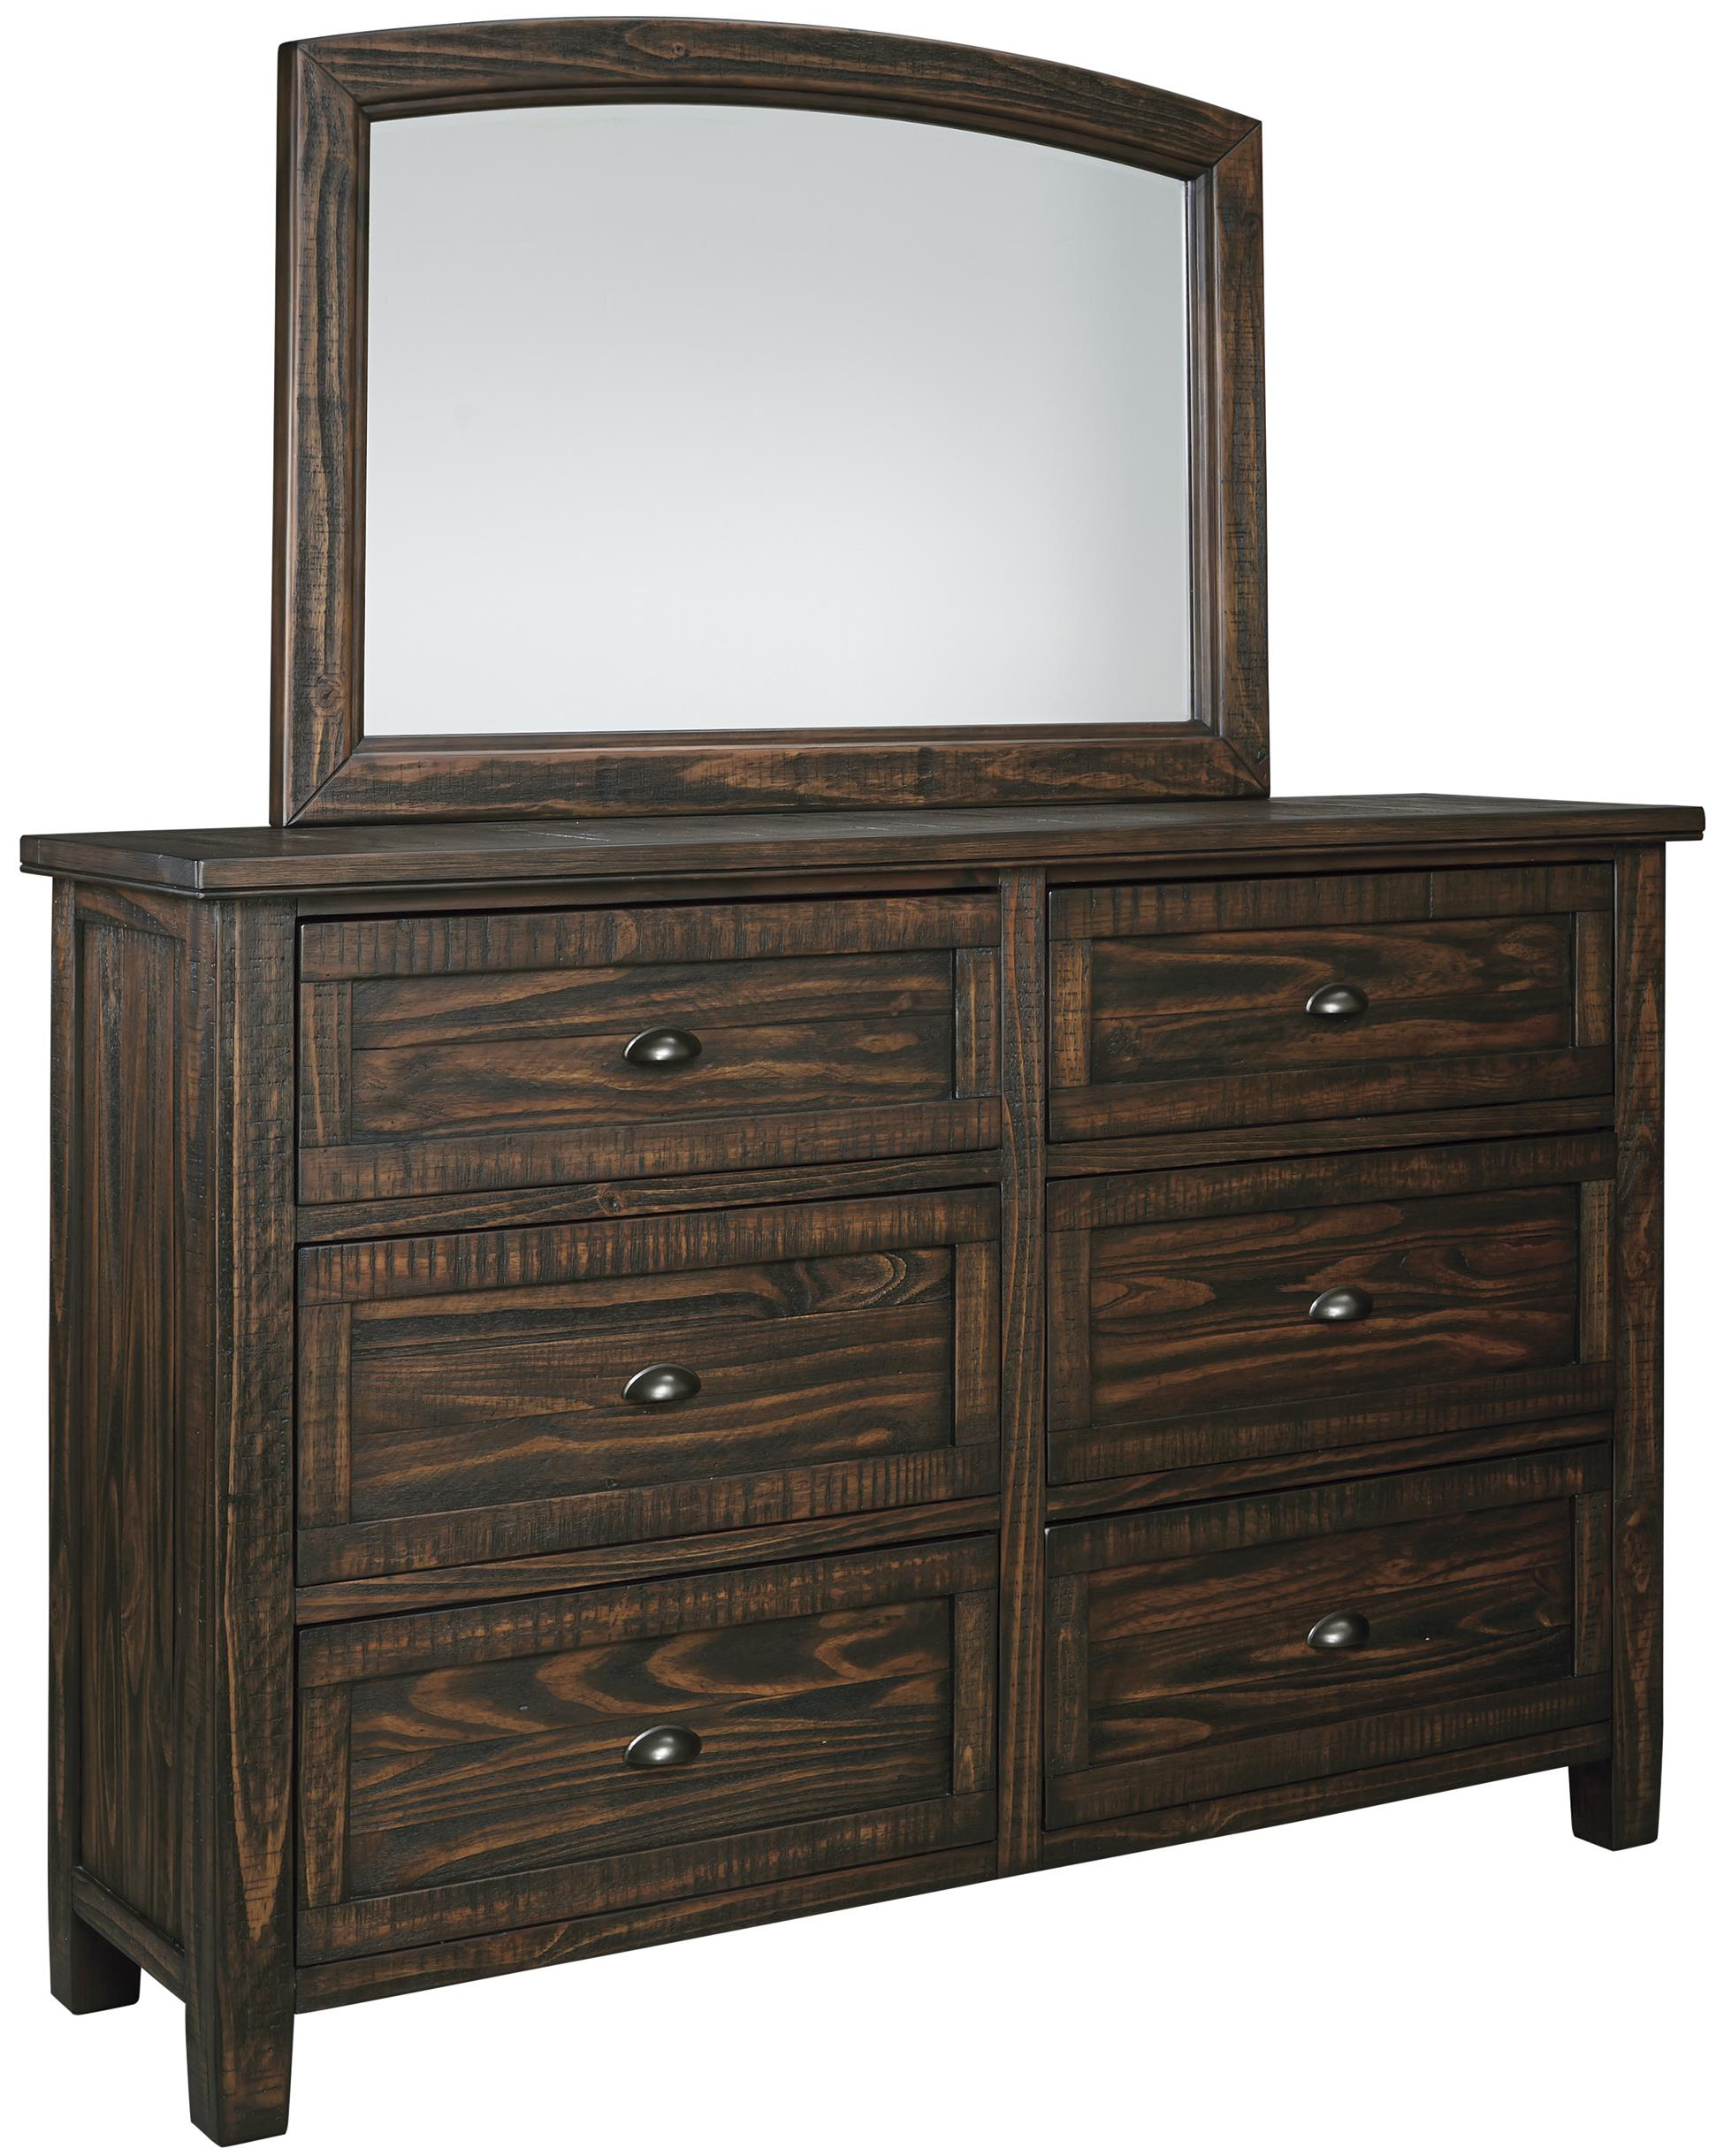 Signature Design by Ashley Trudell 6 Drawer Dresser and Mirror - Item Number: B658-31+36